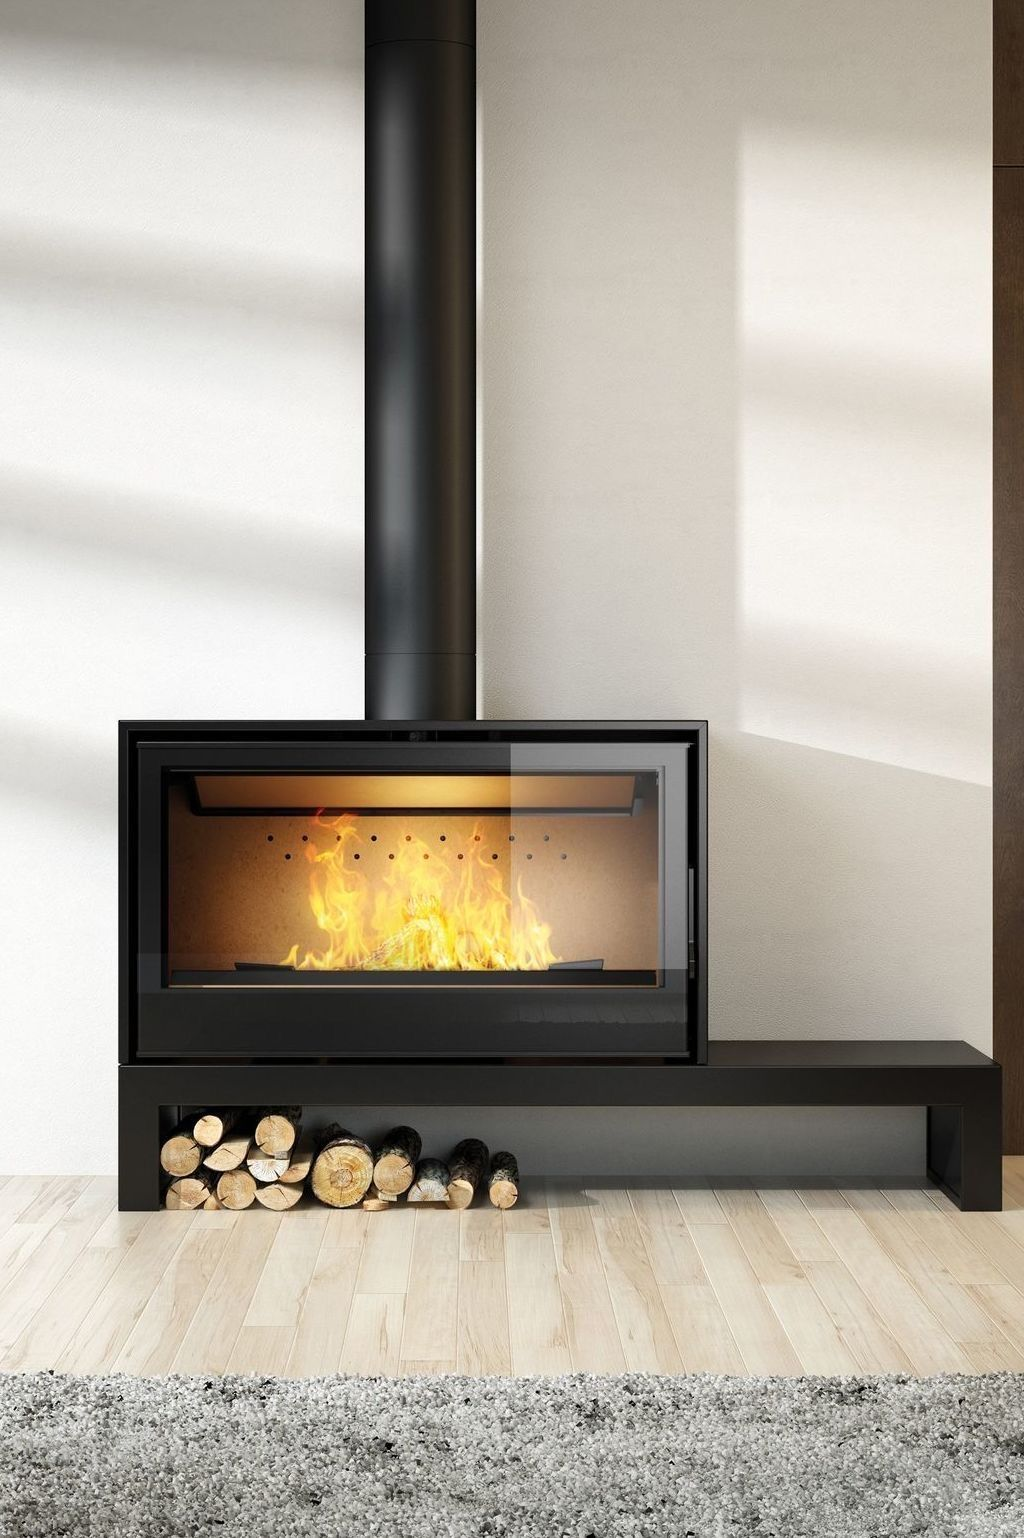 Pin By Clb On Little Fires Everywhere Home Fireplace Freestanding Fireplace Living Room Decor Fireplace